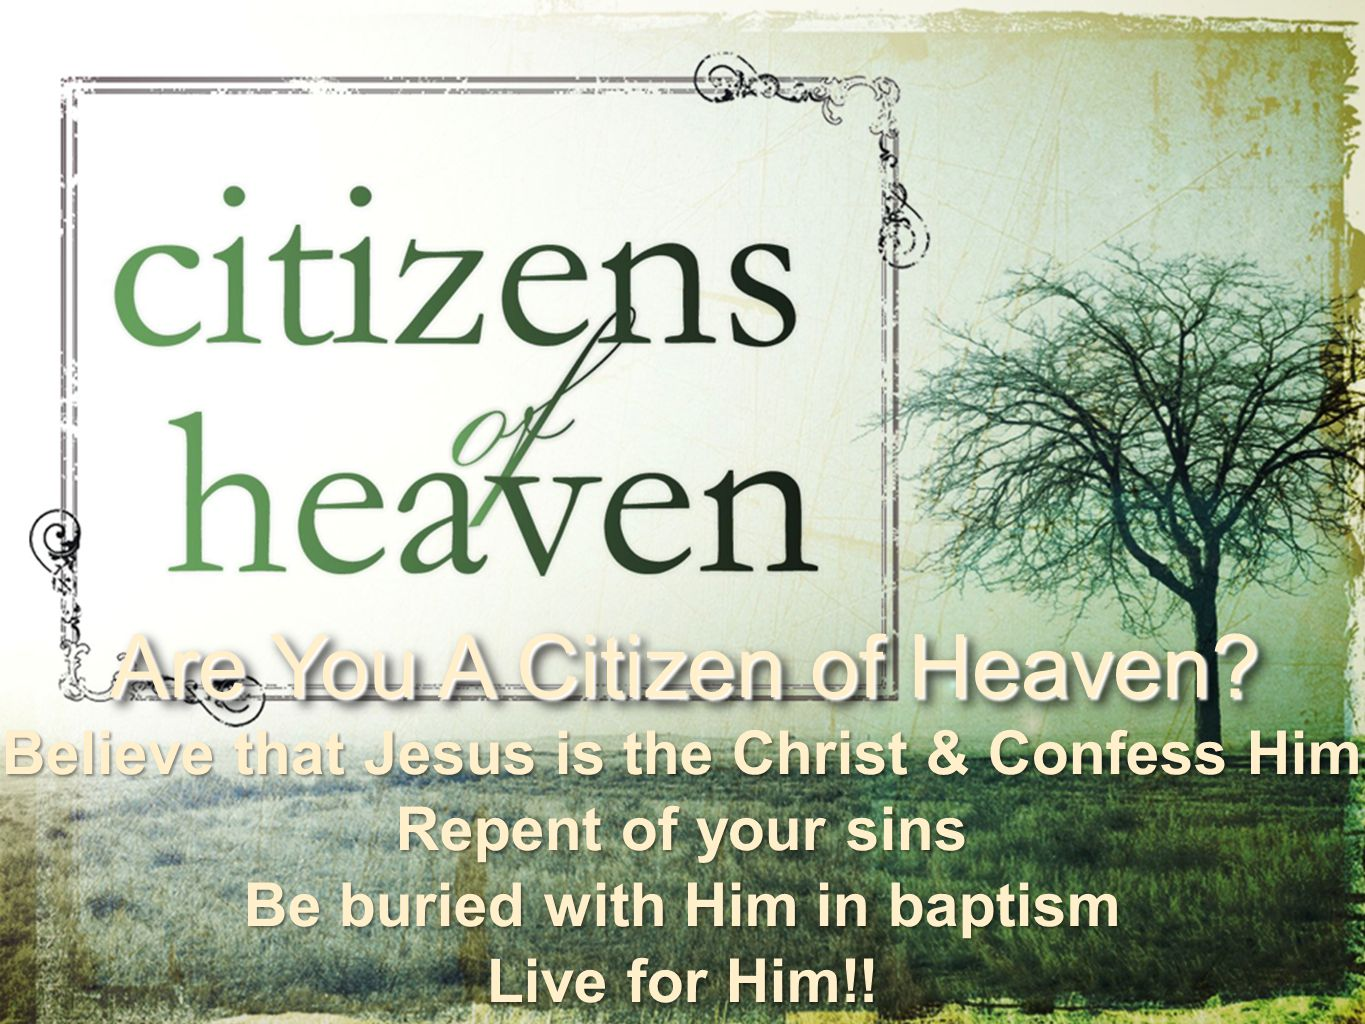 Believe that Jesus is the Christ & Confess Him Repent of your sins Be buried with Him in baptism Live for Him!.